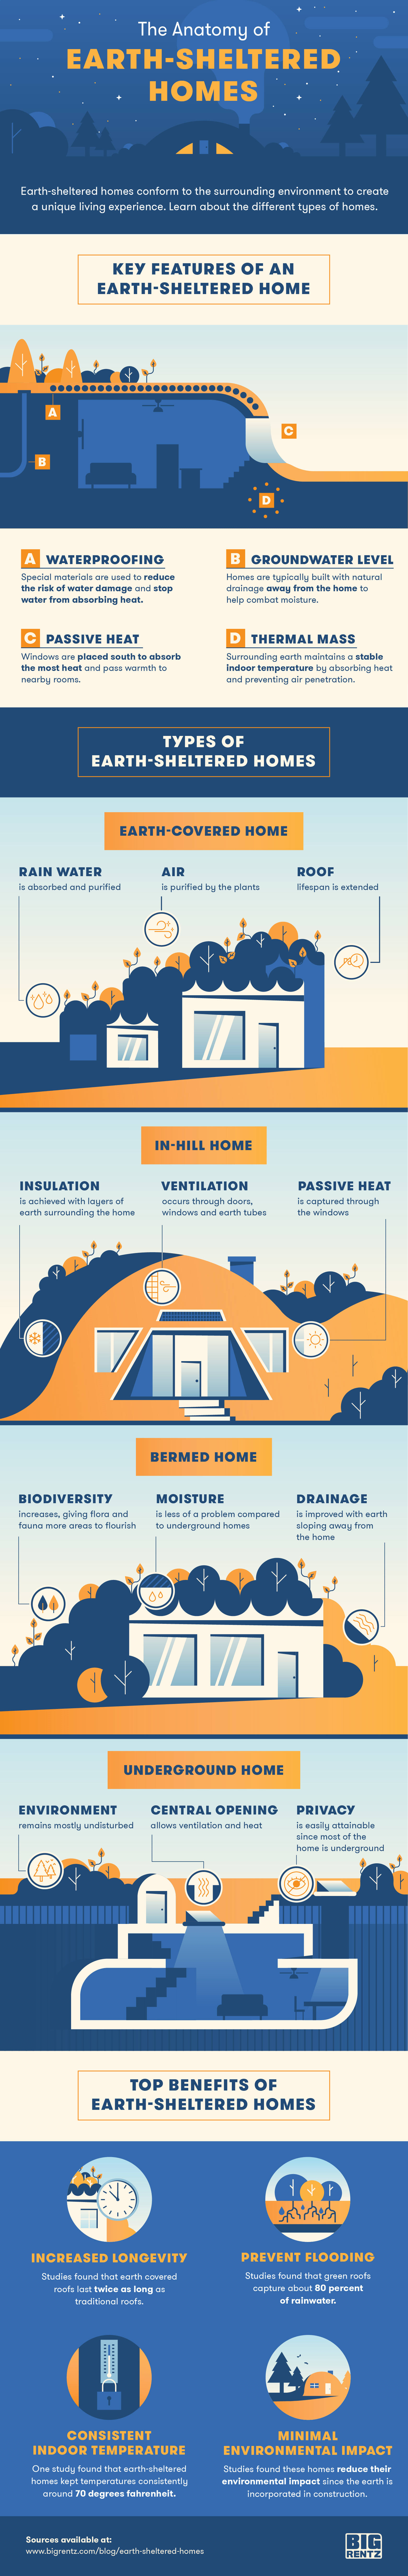 earth sheltered homes infographic